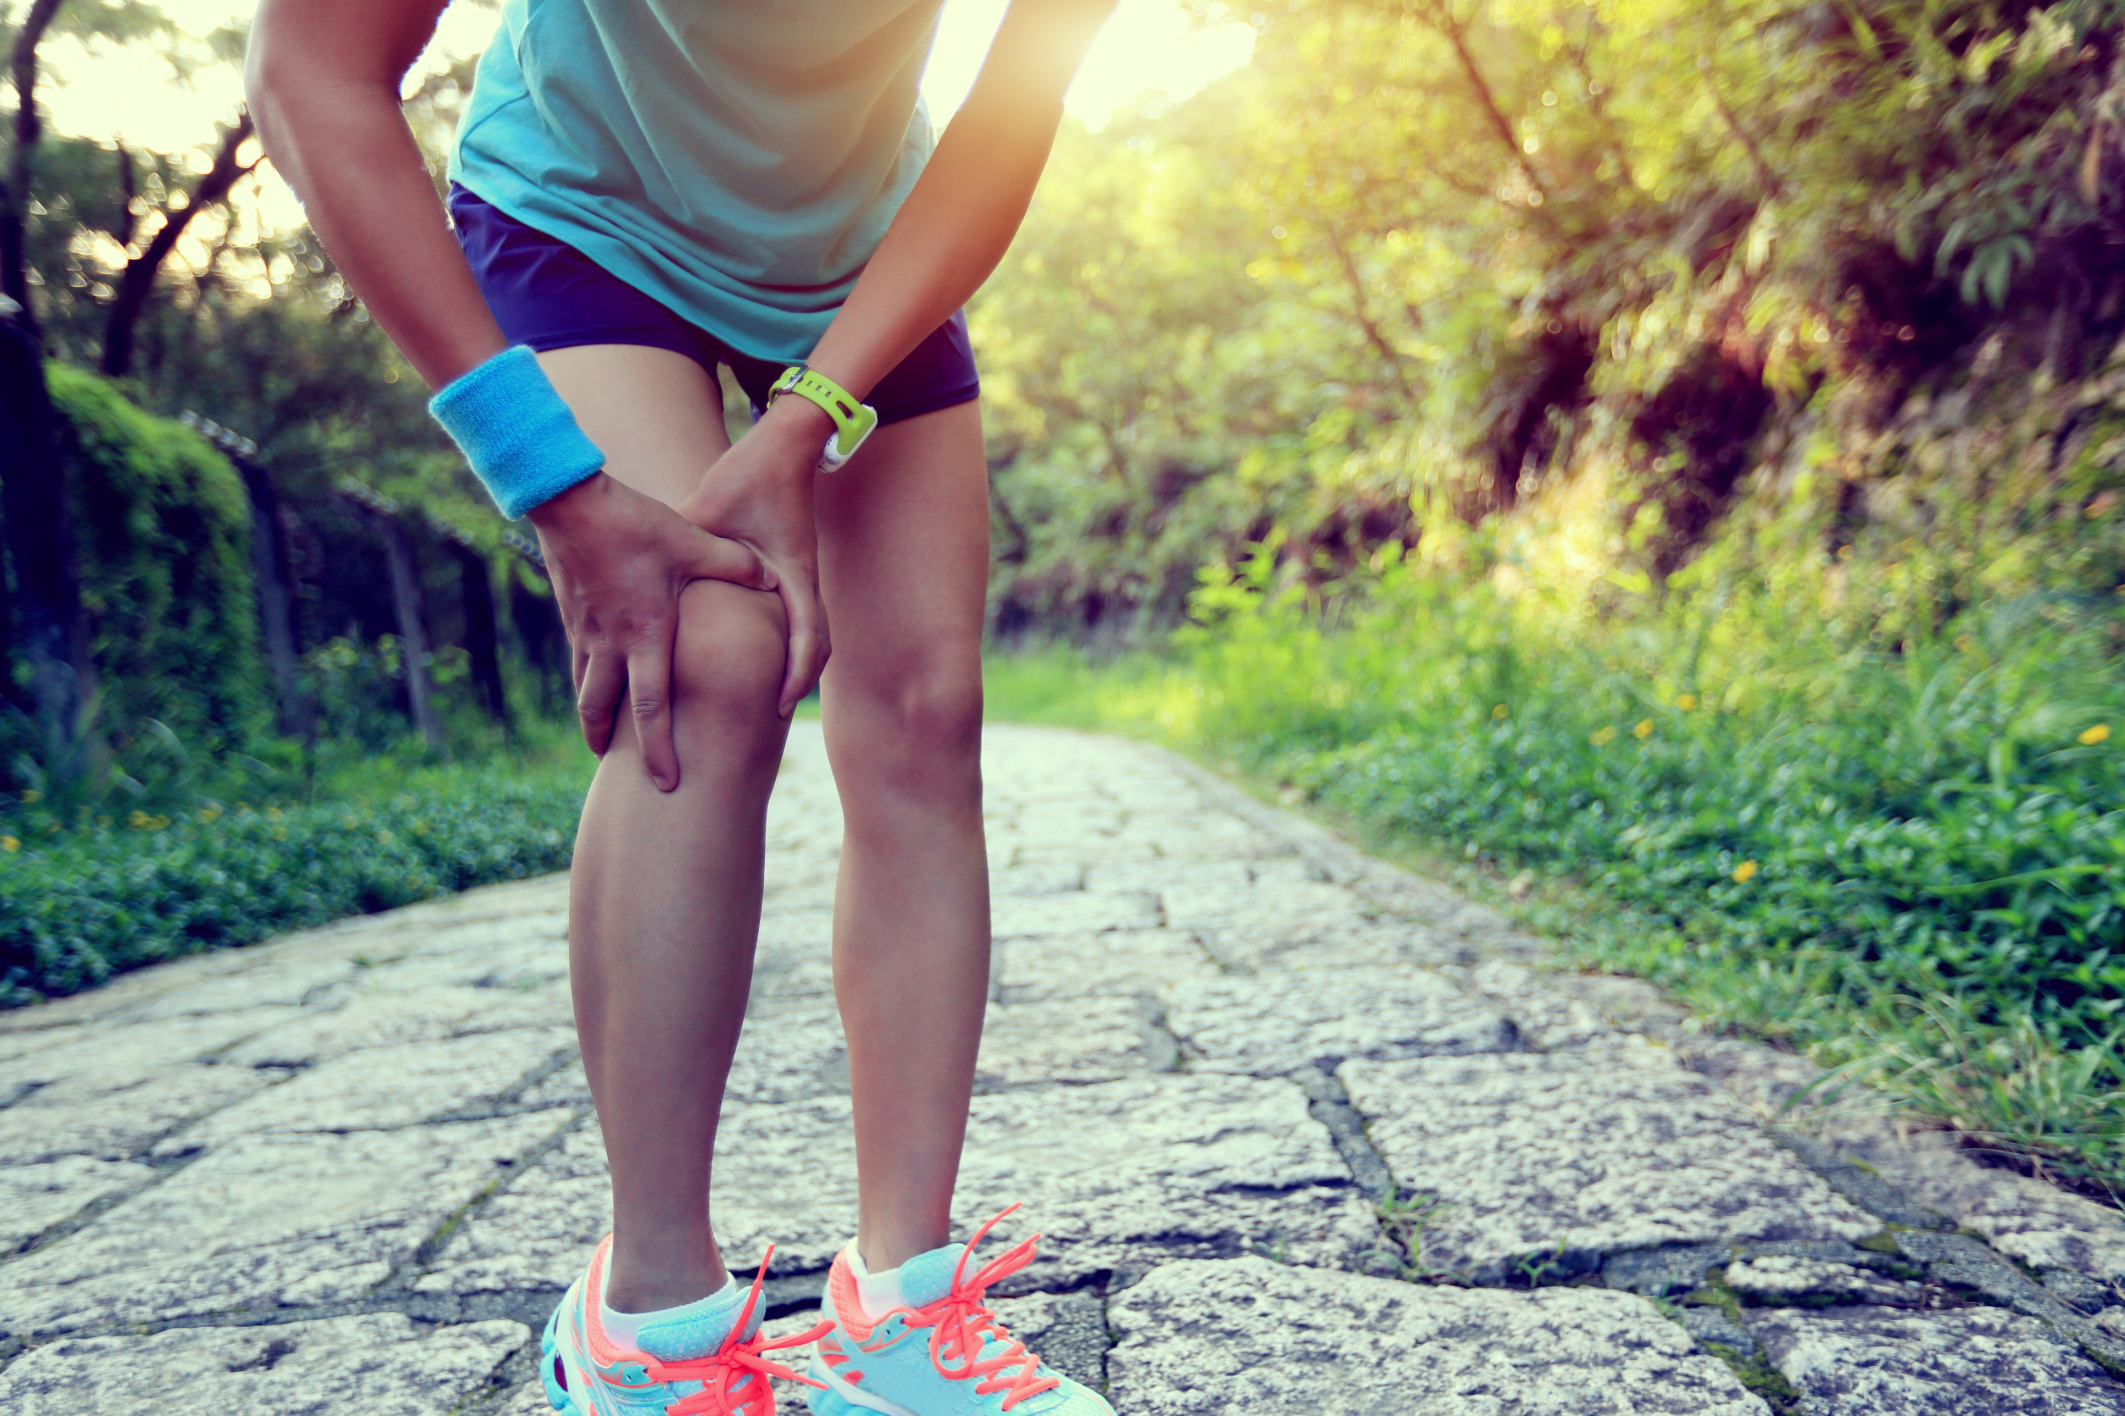 Birth control pills lessen chance of knee injury in female athletes, study finds